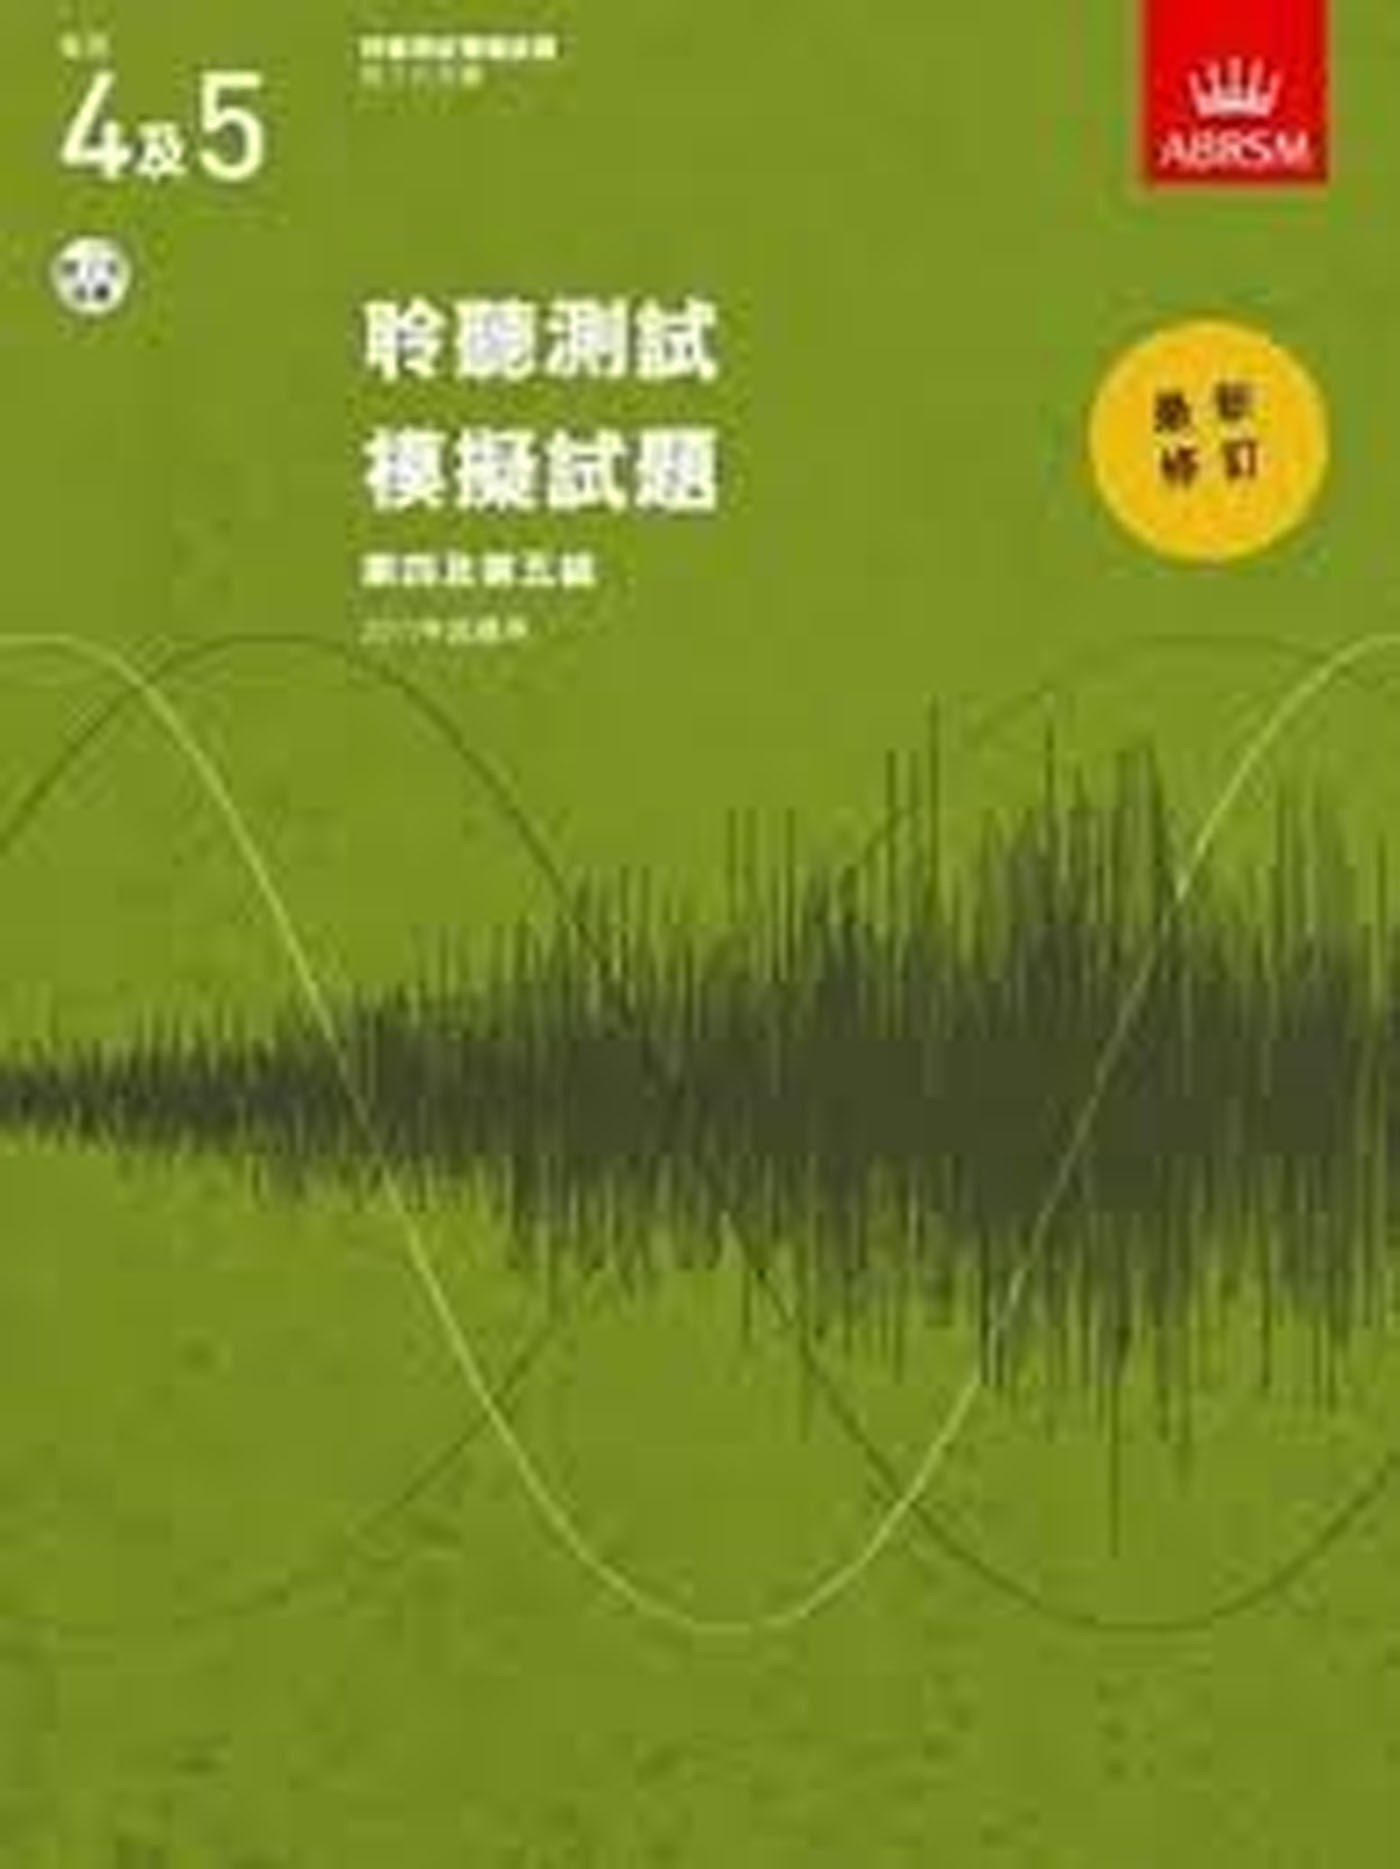 ABRSM Specimen Aural Tests Grades 4 & 5 Trad Chinese Edition Book & CDs S145